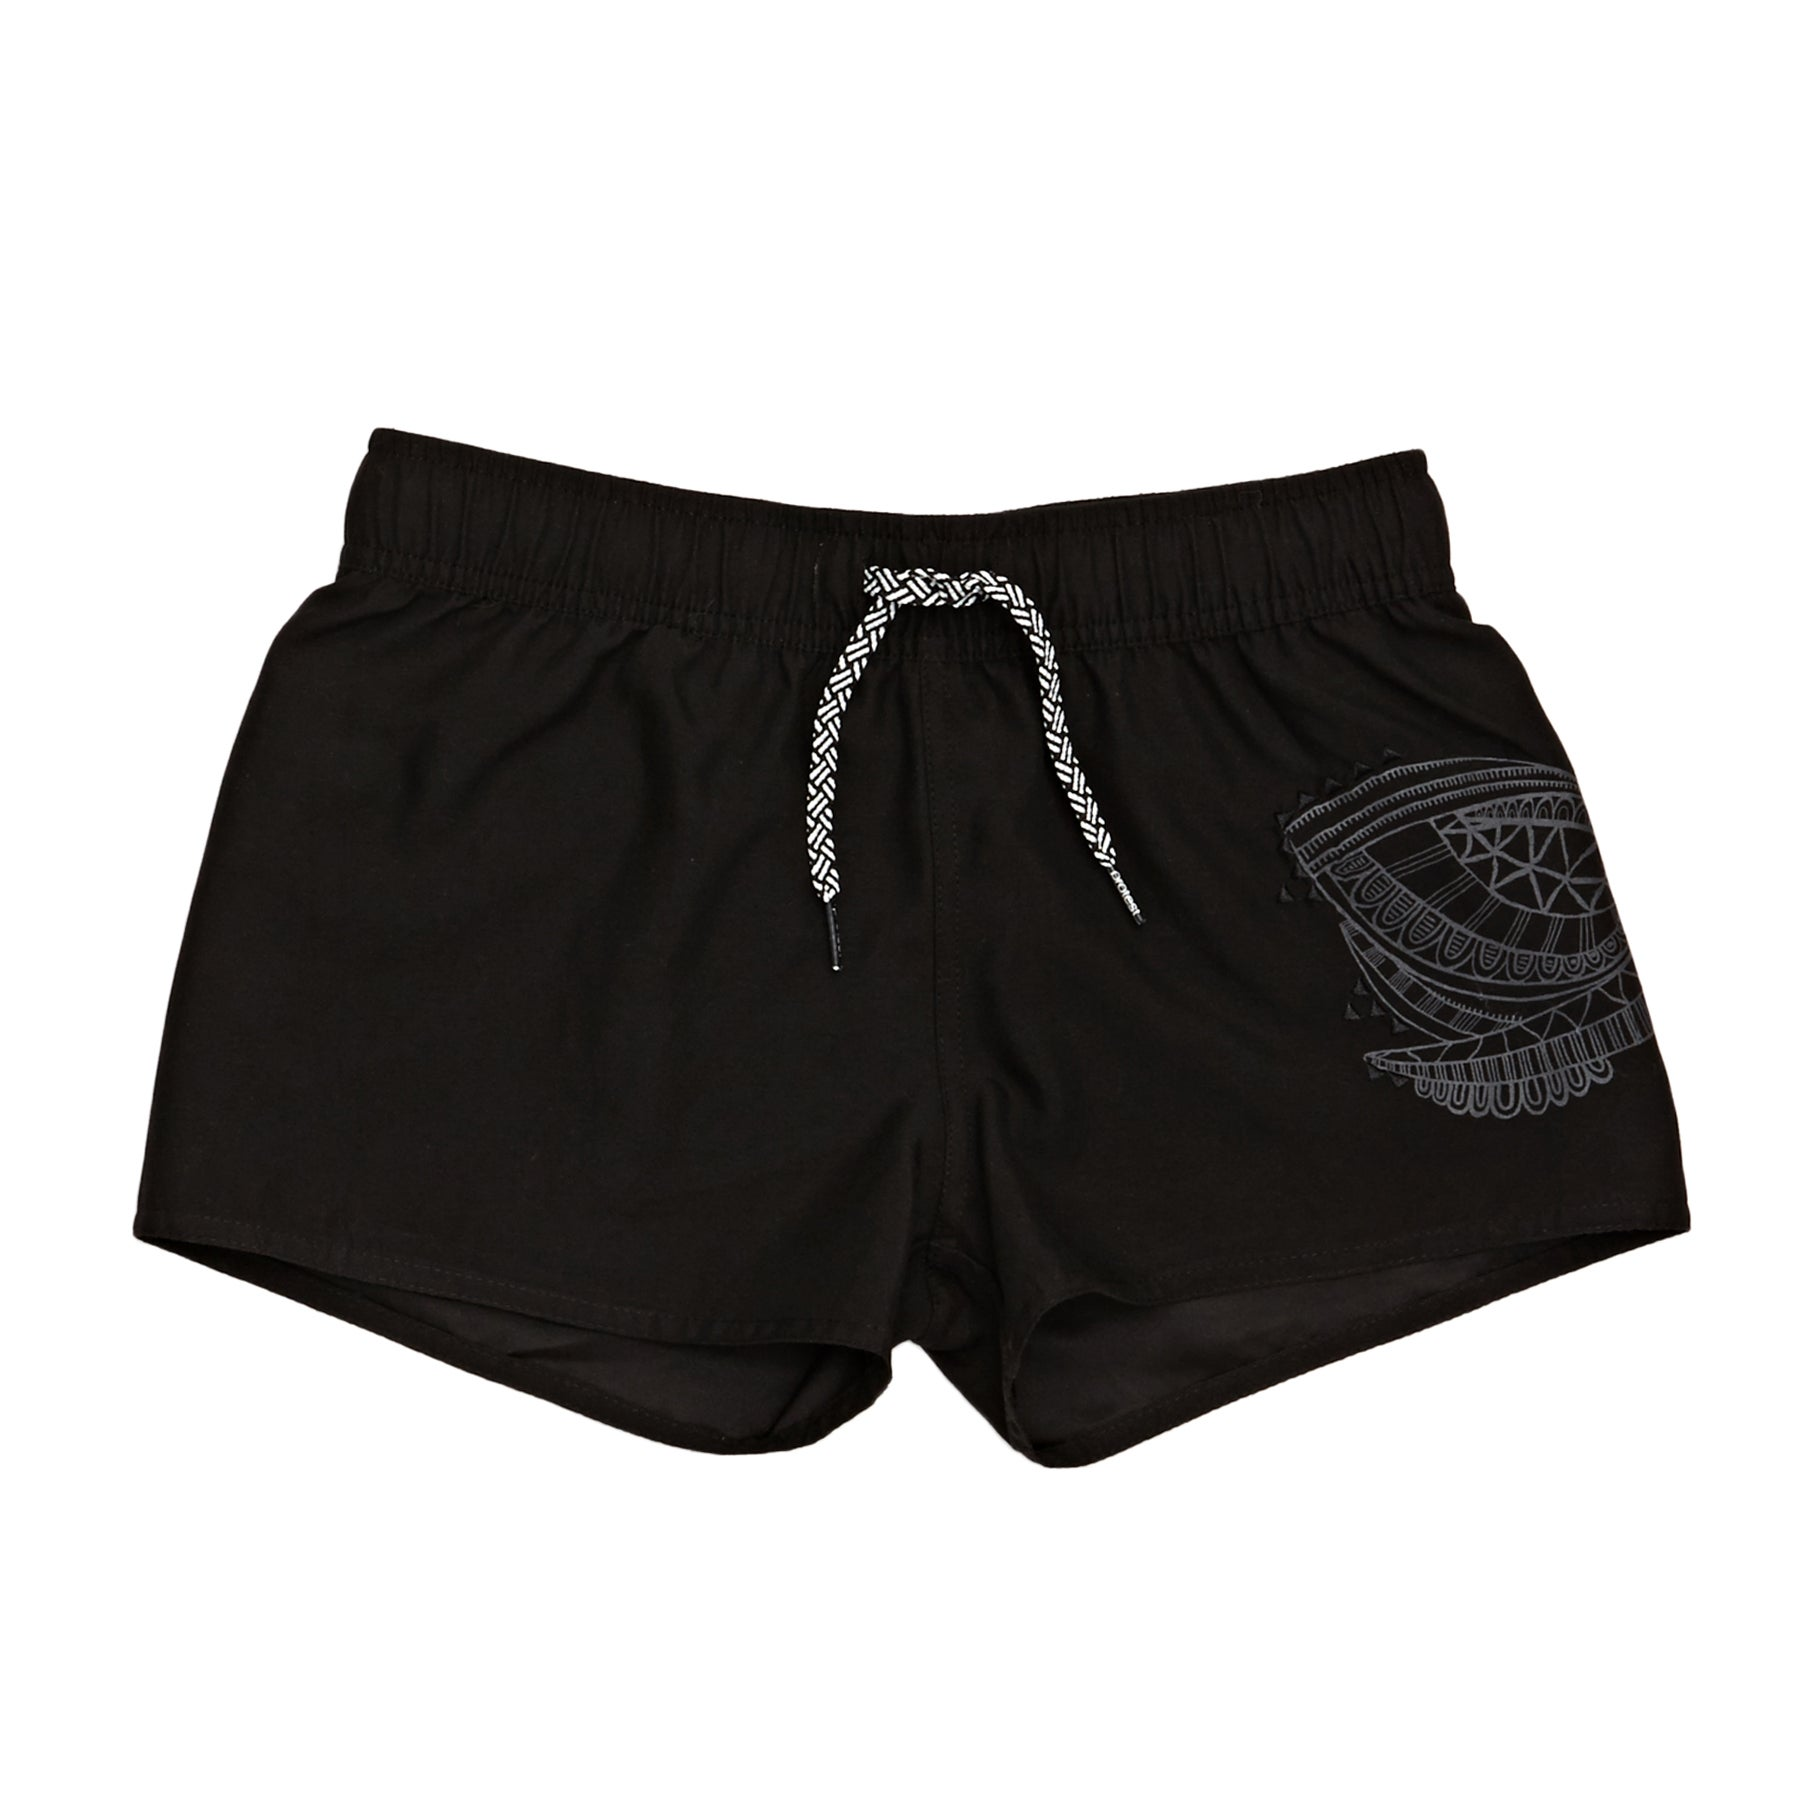 Boardshort Protest Fouke 18 Jr - True Black